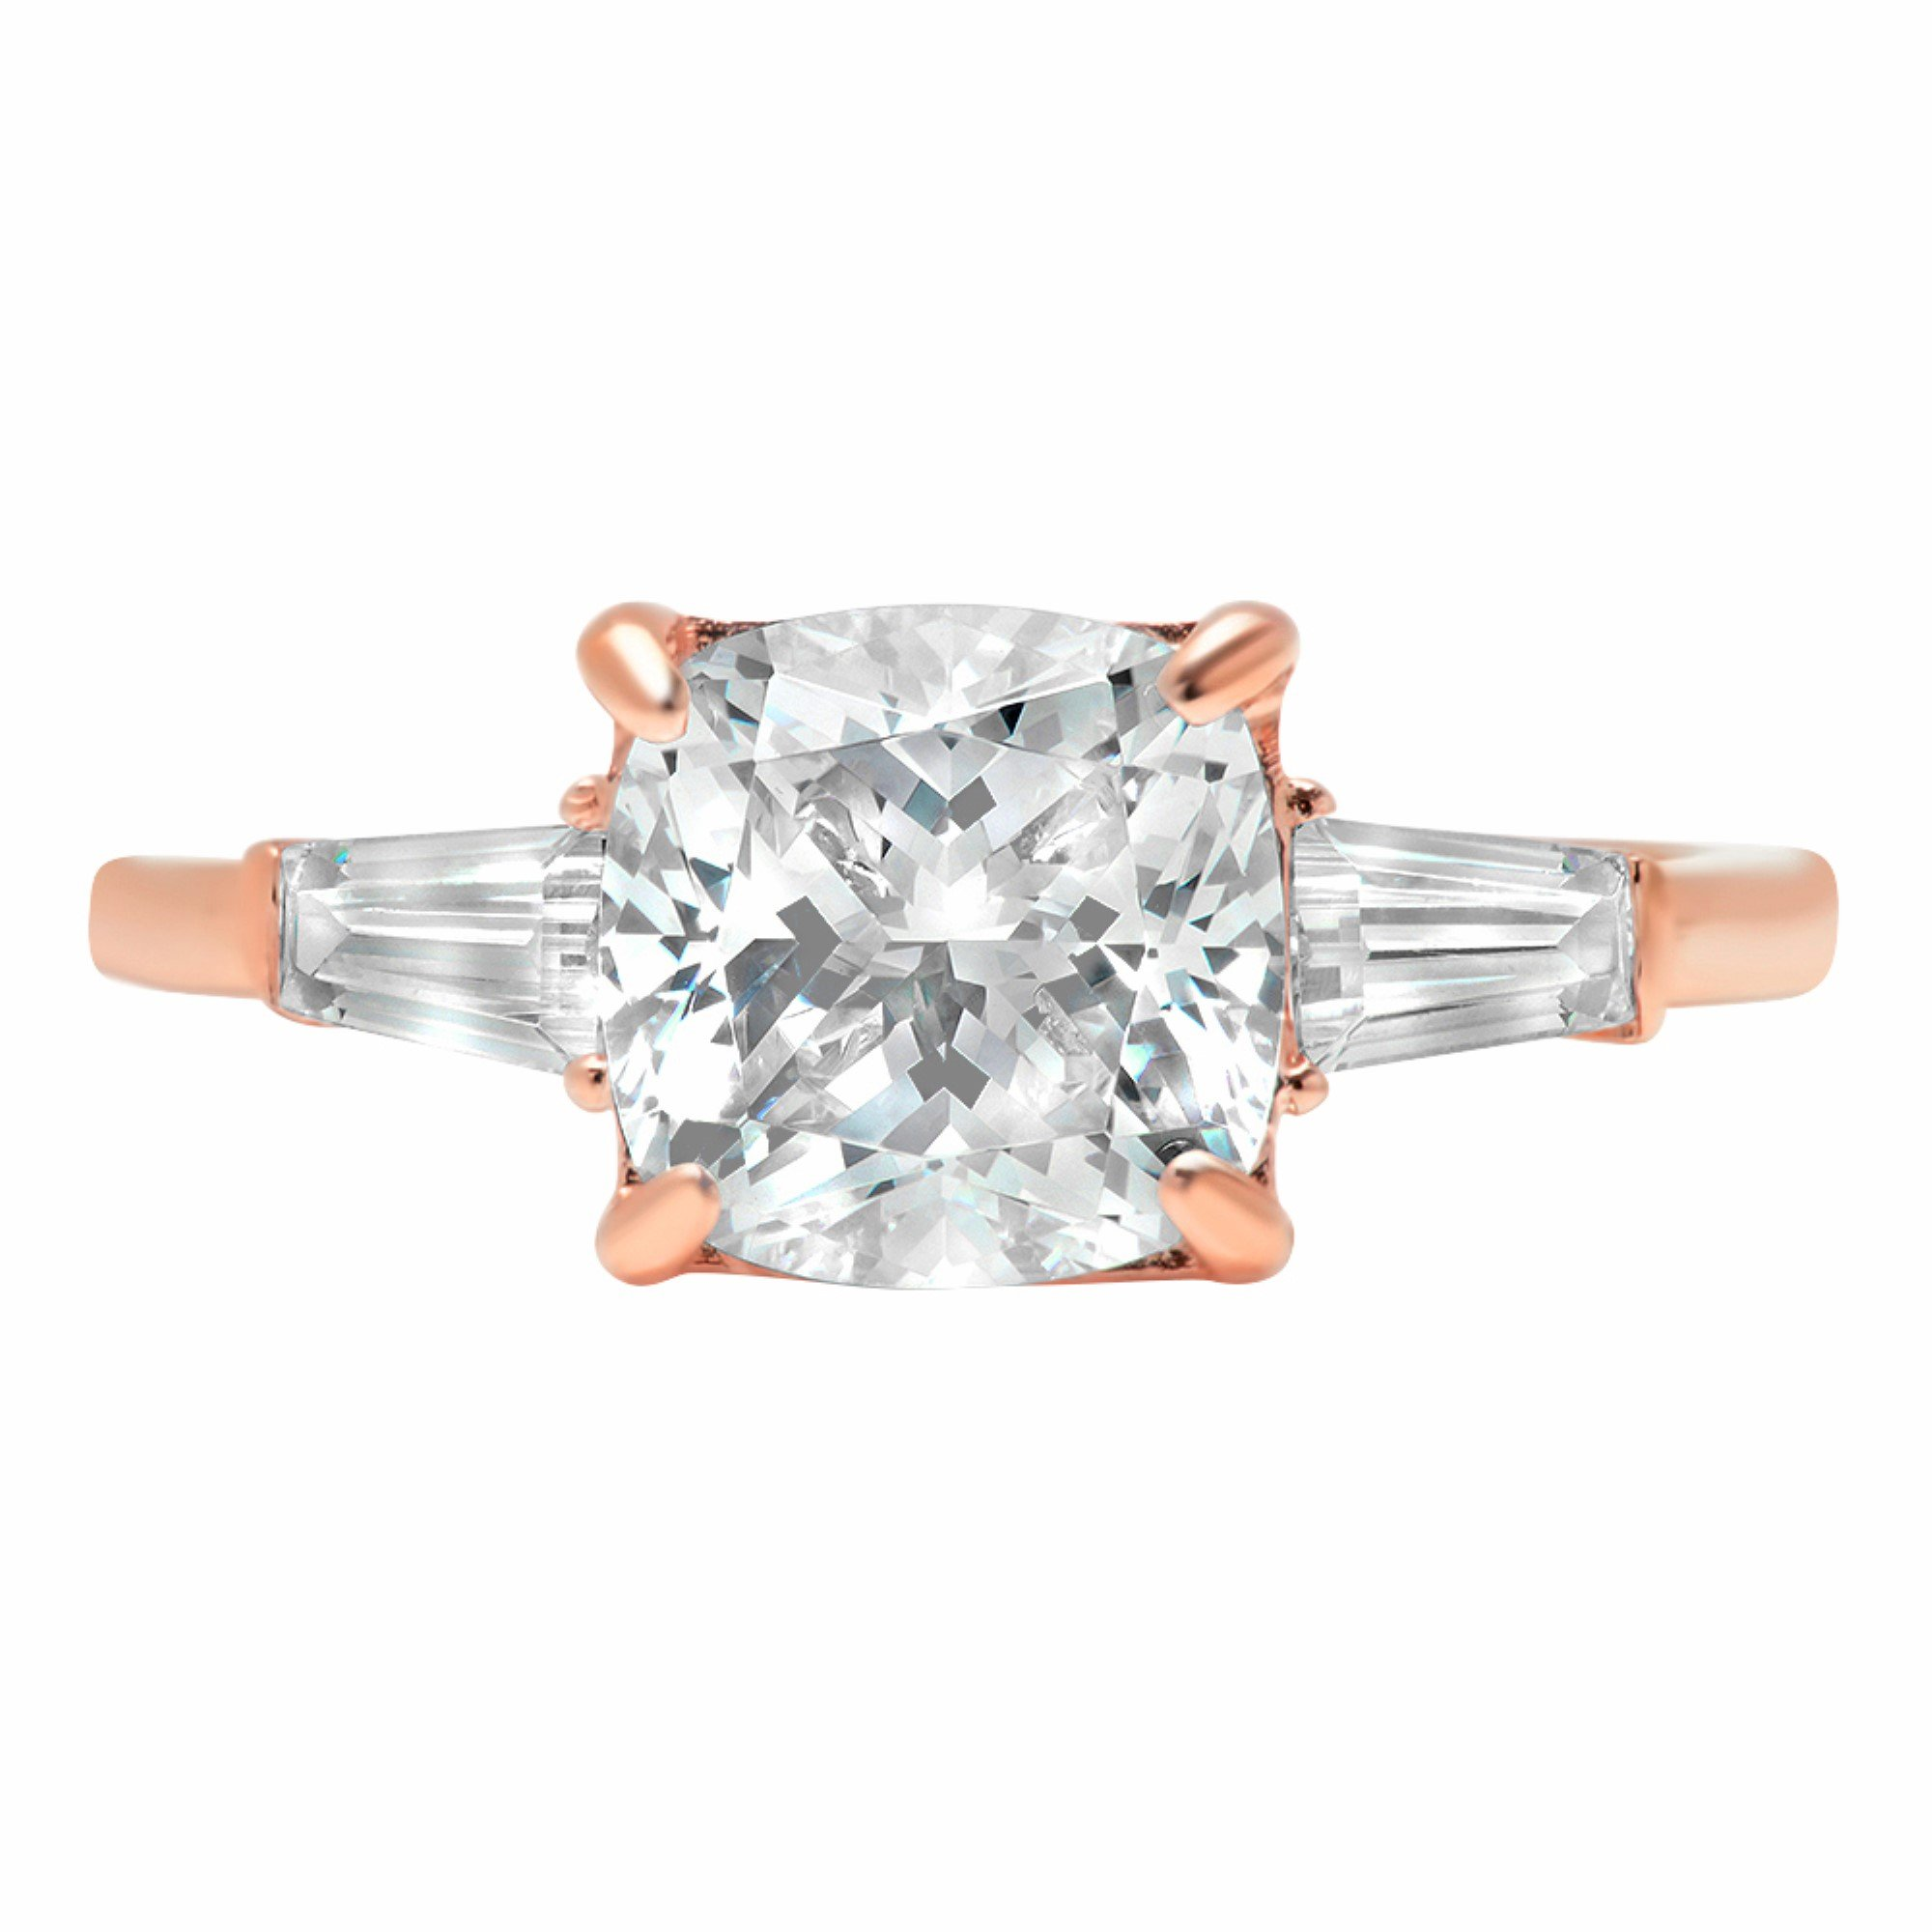 Radiant Baguette 3-Stone Classic Solitaire Designer Wedding Bridal Statement Anniversary Engagement Promise Ring 14k Rose Gold, 3.7ct, 4.75 by Clara Pucci